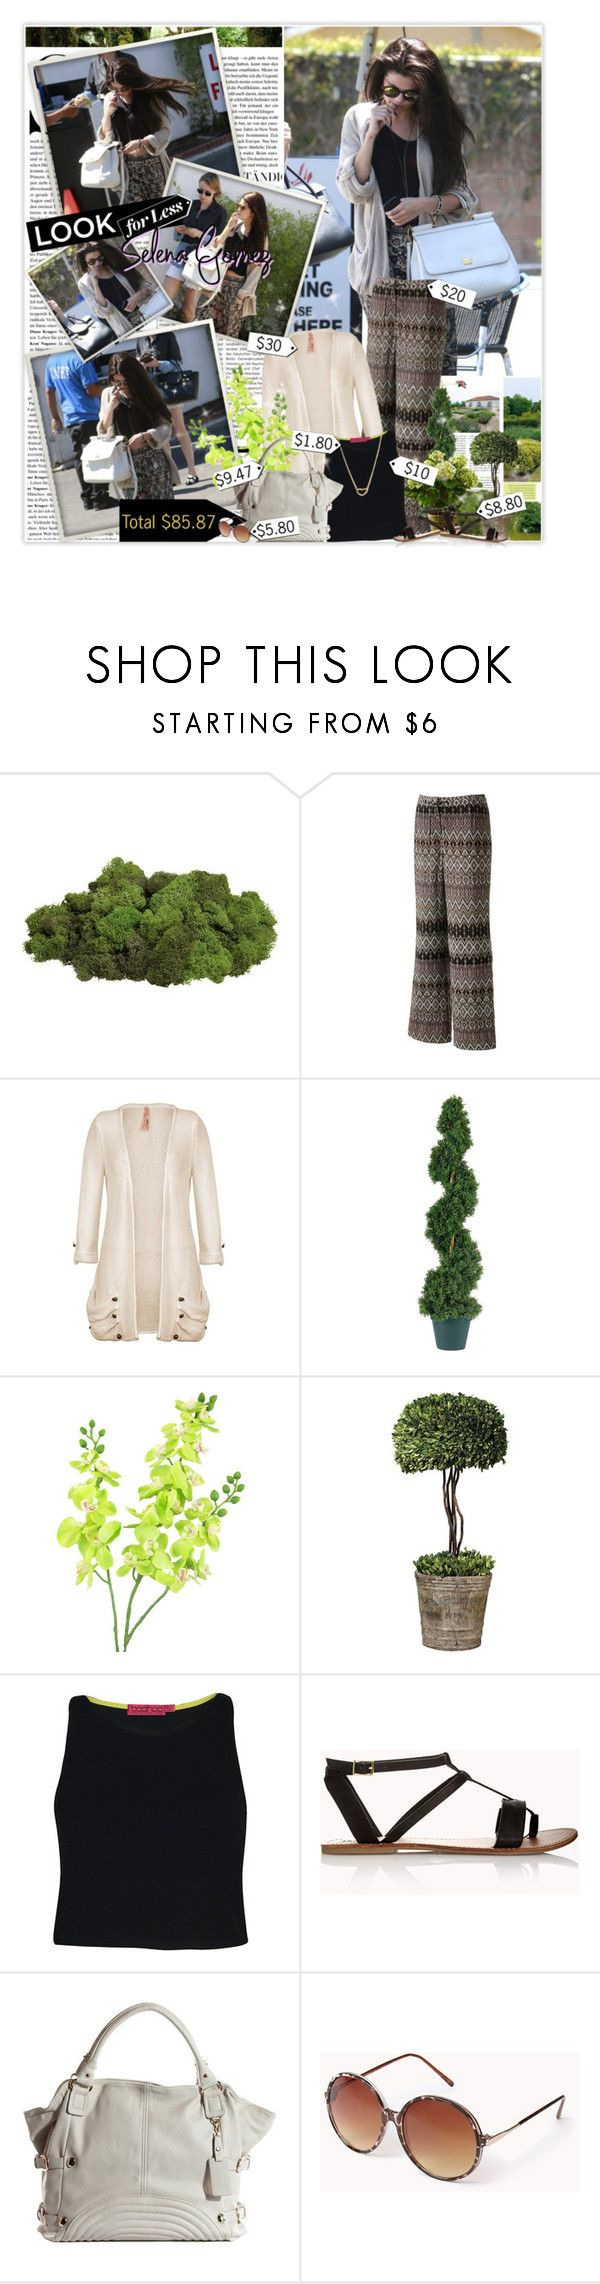 """""""Selena Gomez"""" by planetlipstick ❤ liked on Polyvore featuring Crate and Barrel, Jennifer Lopez, Winward, Uttermost, Boohoo and Forever 21"""